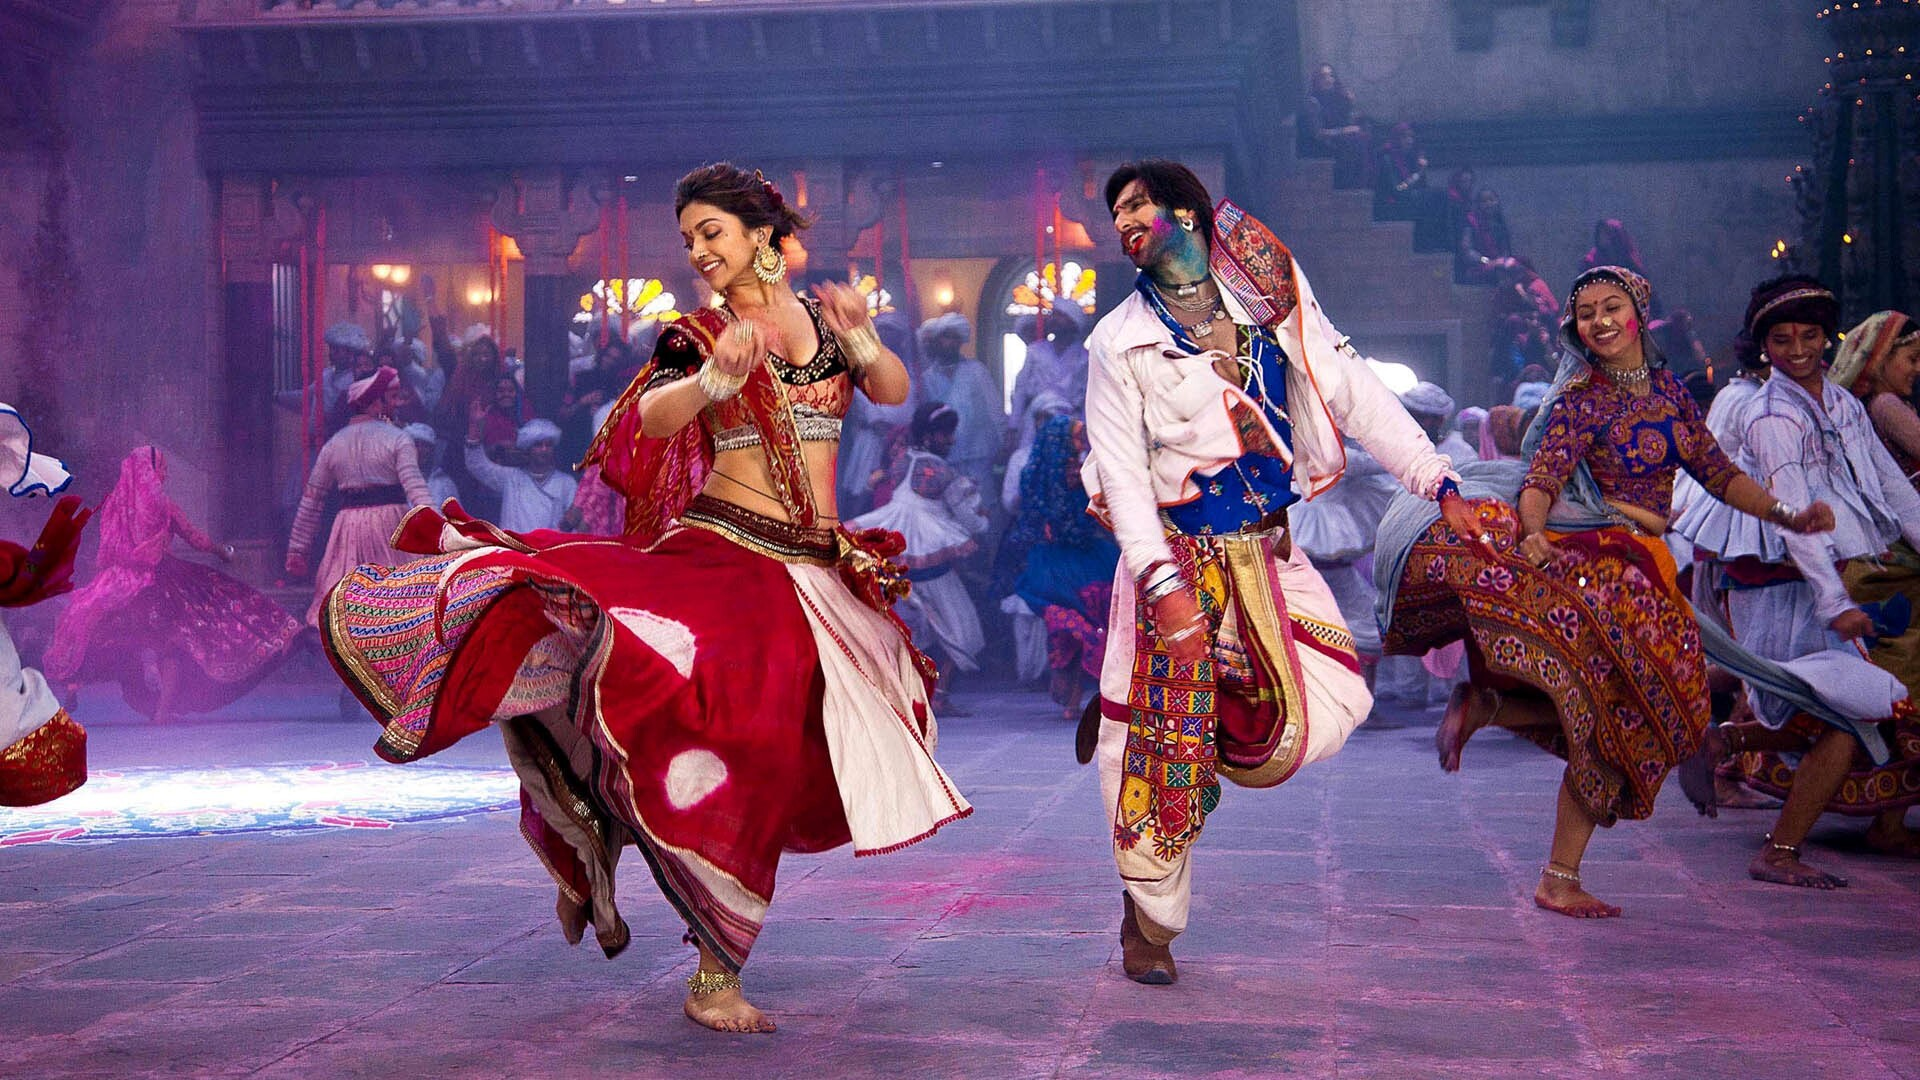 Free Download Ram Leela In High Definition Quality Wallpapers For Desktop And Mobiles HD Wide 4K 5K Resolutions